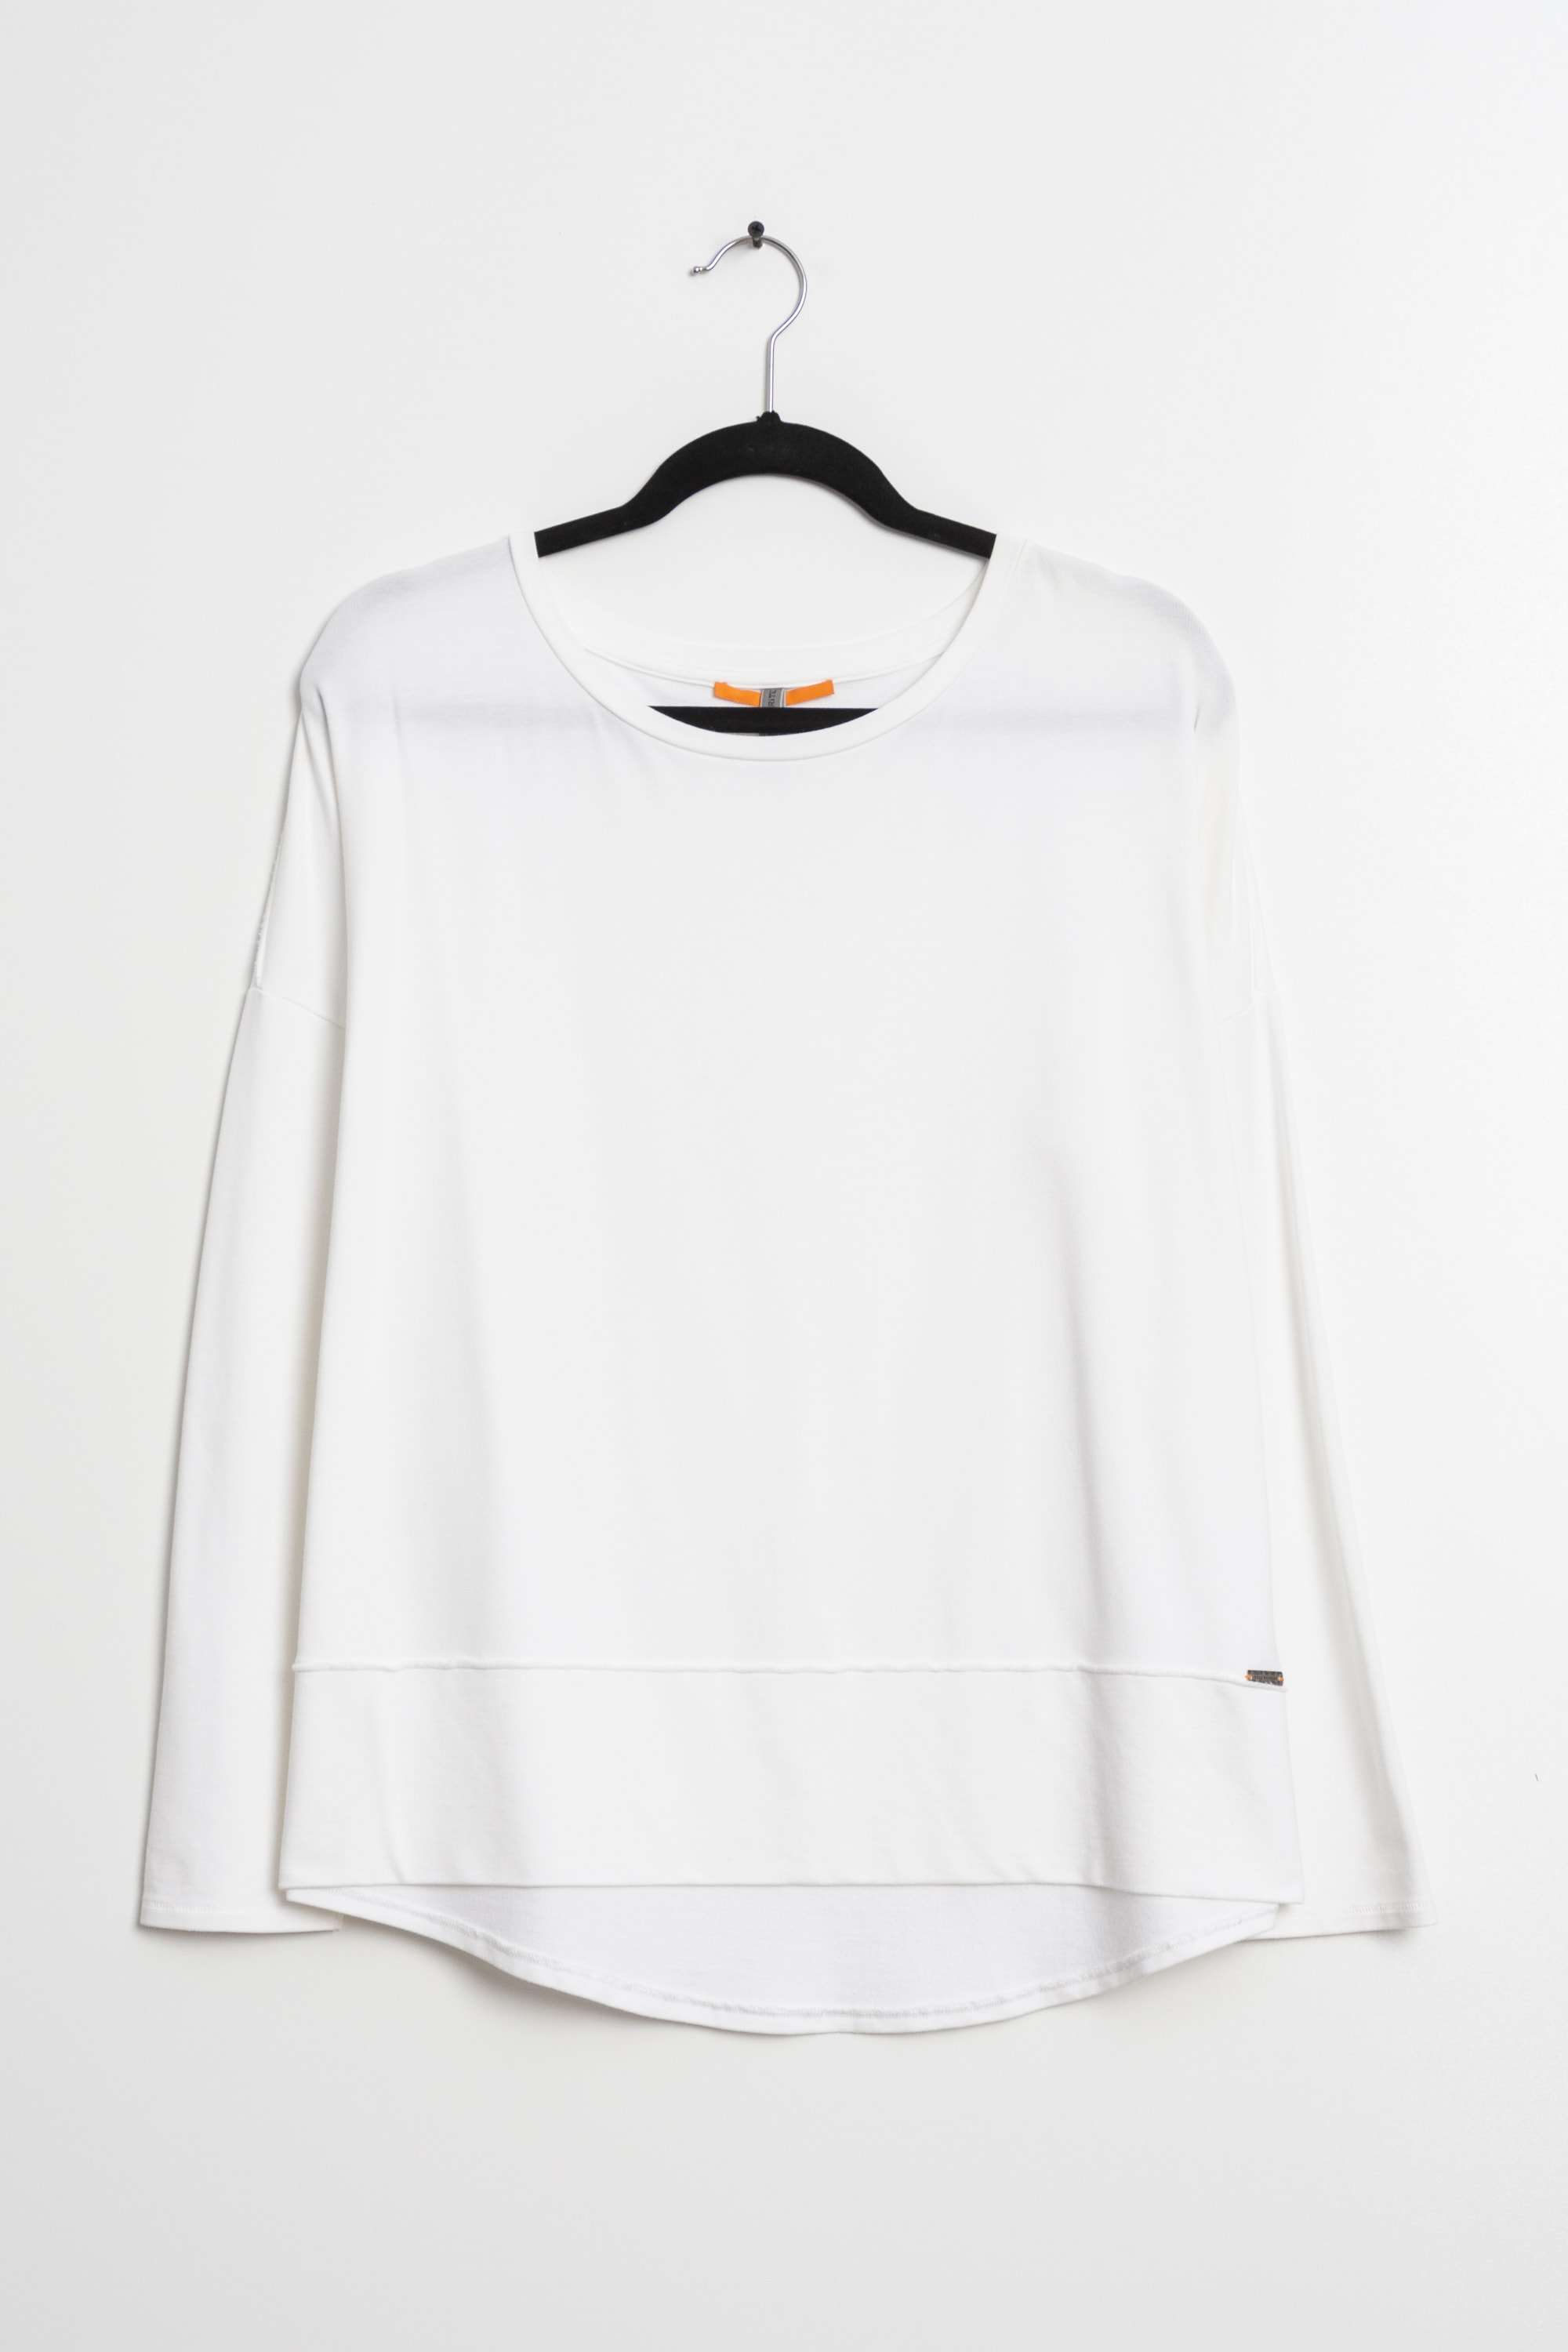 HUGO Sweat / Fleece Weiß Gr.L